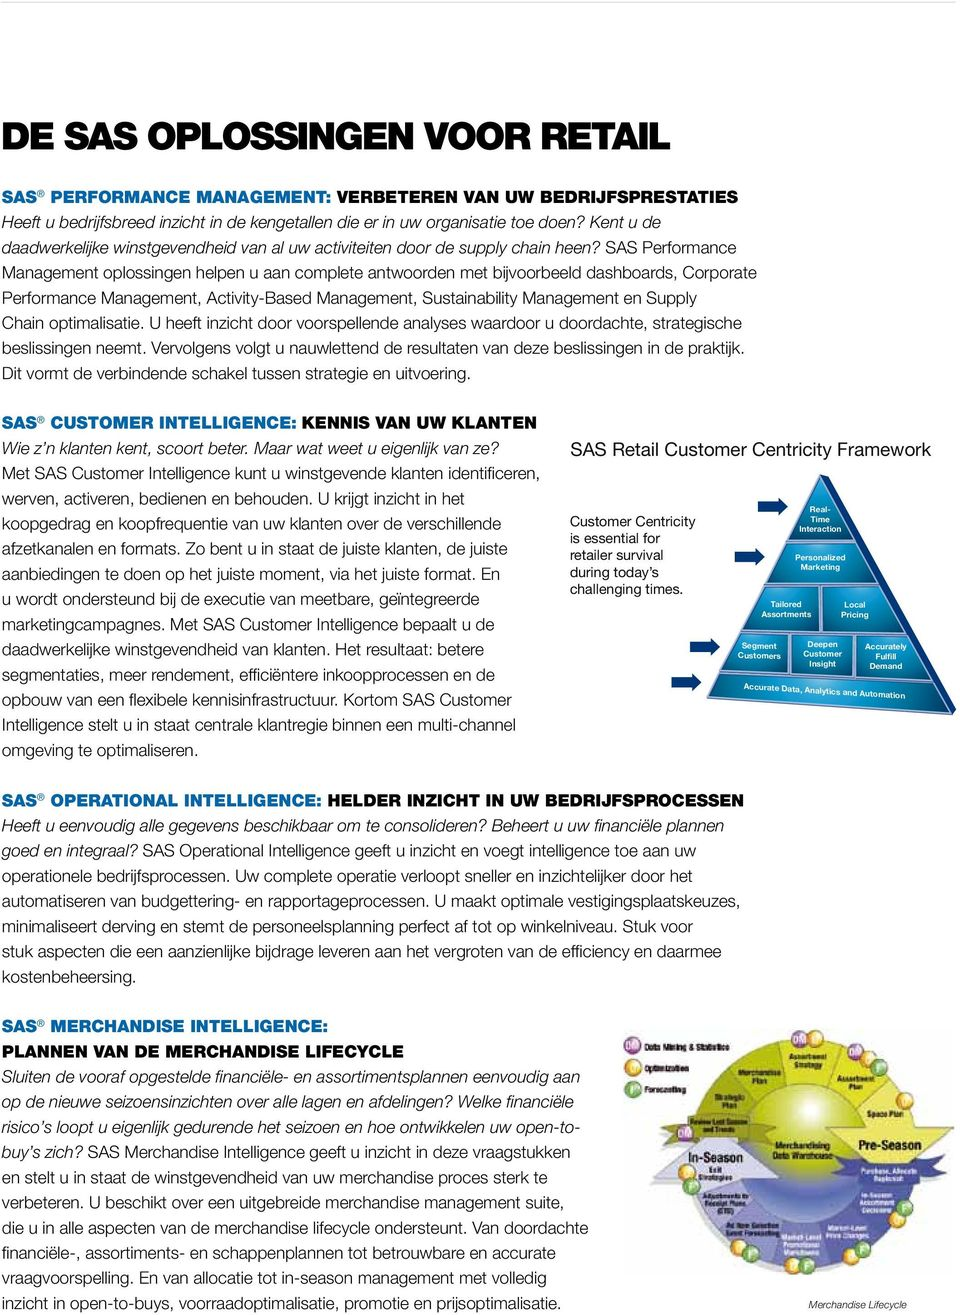 SAS Performance Management oplossingen helpen u aan complete antwoorden met bijvoorbeeld dashboards, Corporate Performance Management, Activity-Based Management, Sustainability Management en Supply